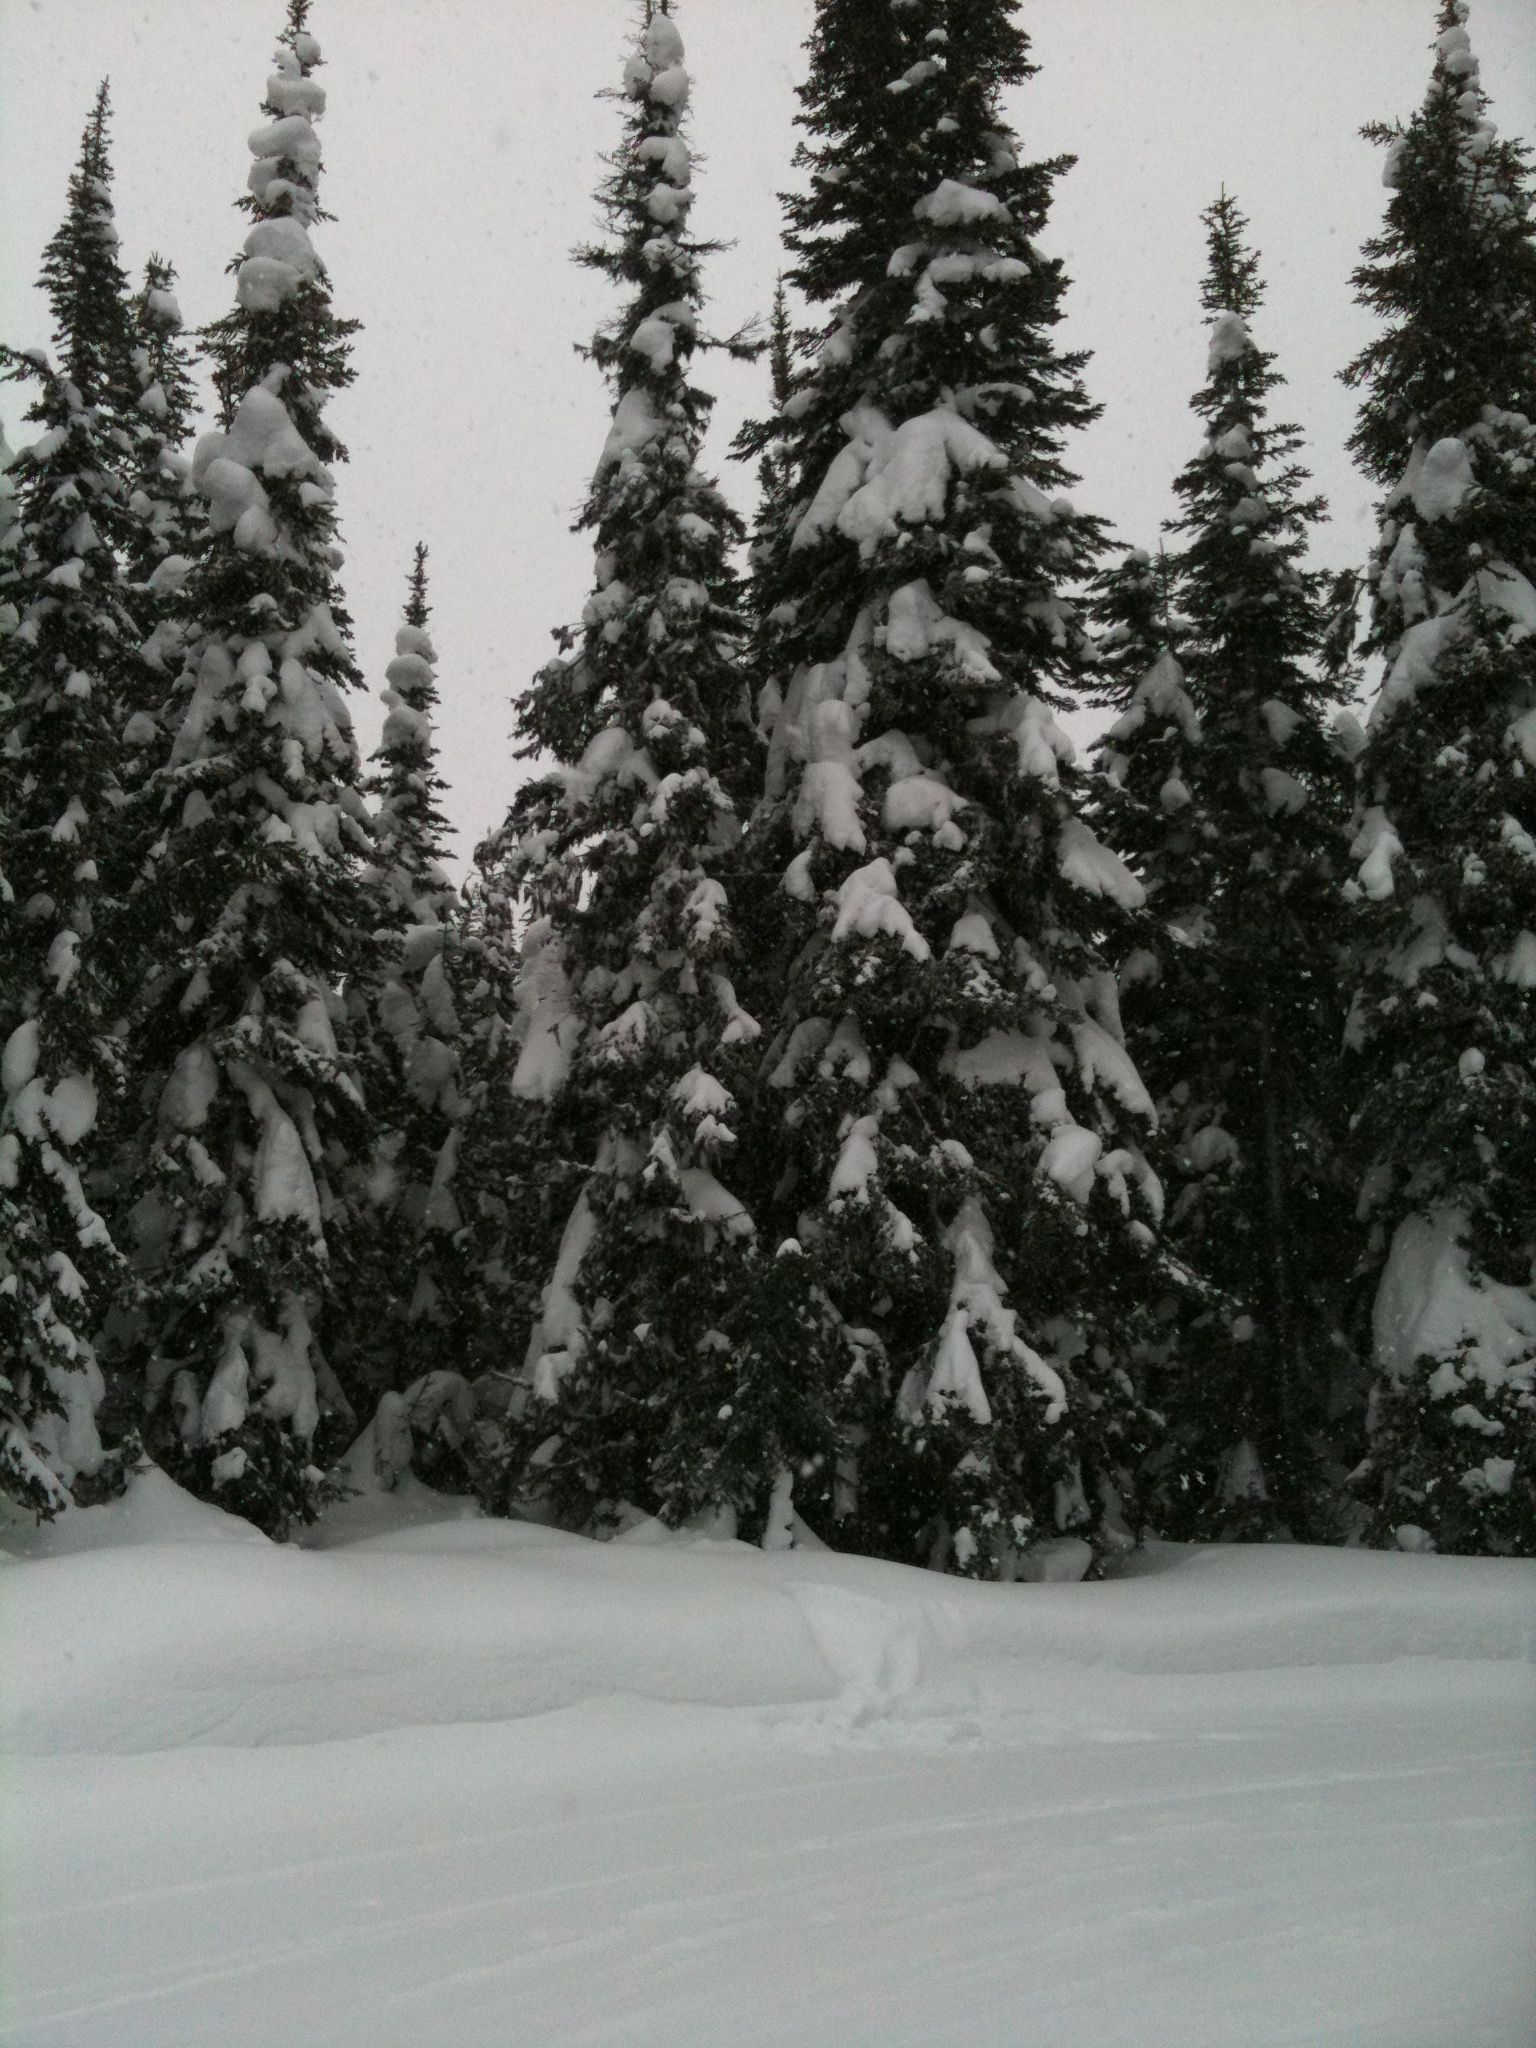 Skiing surrounded by snow covered trees at Silver Star Mountain Vernon, B.C.